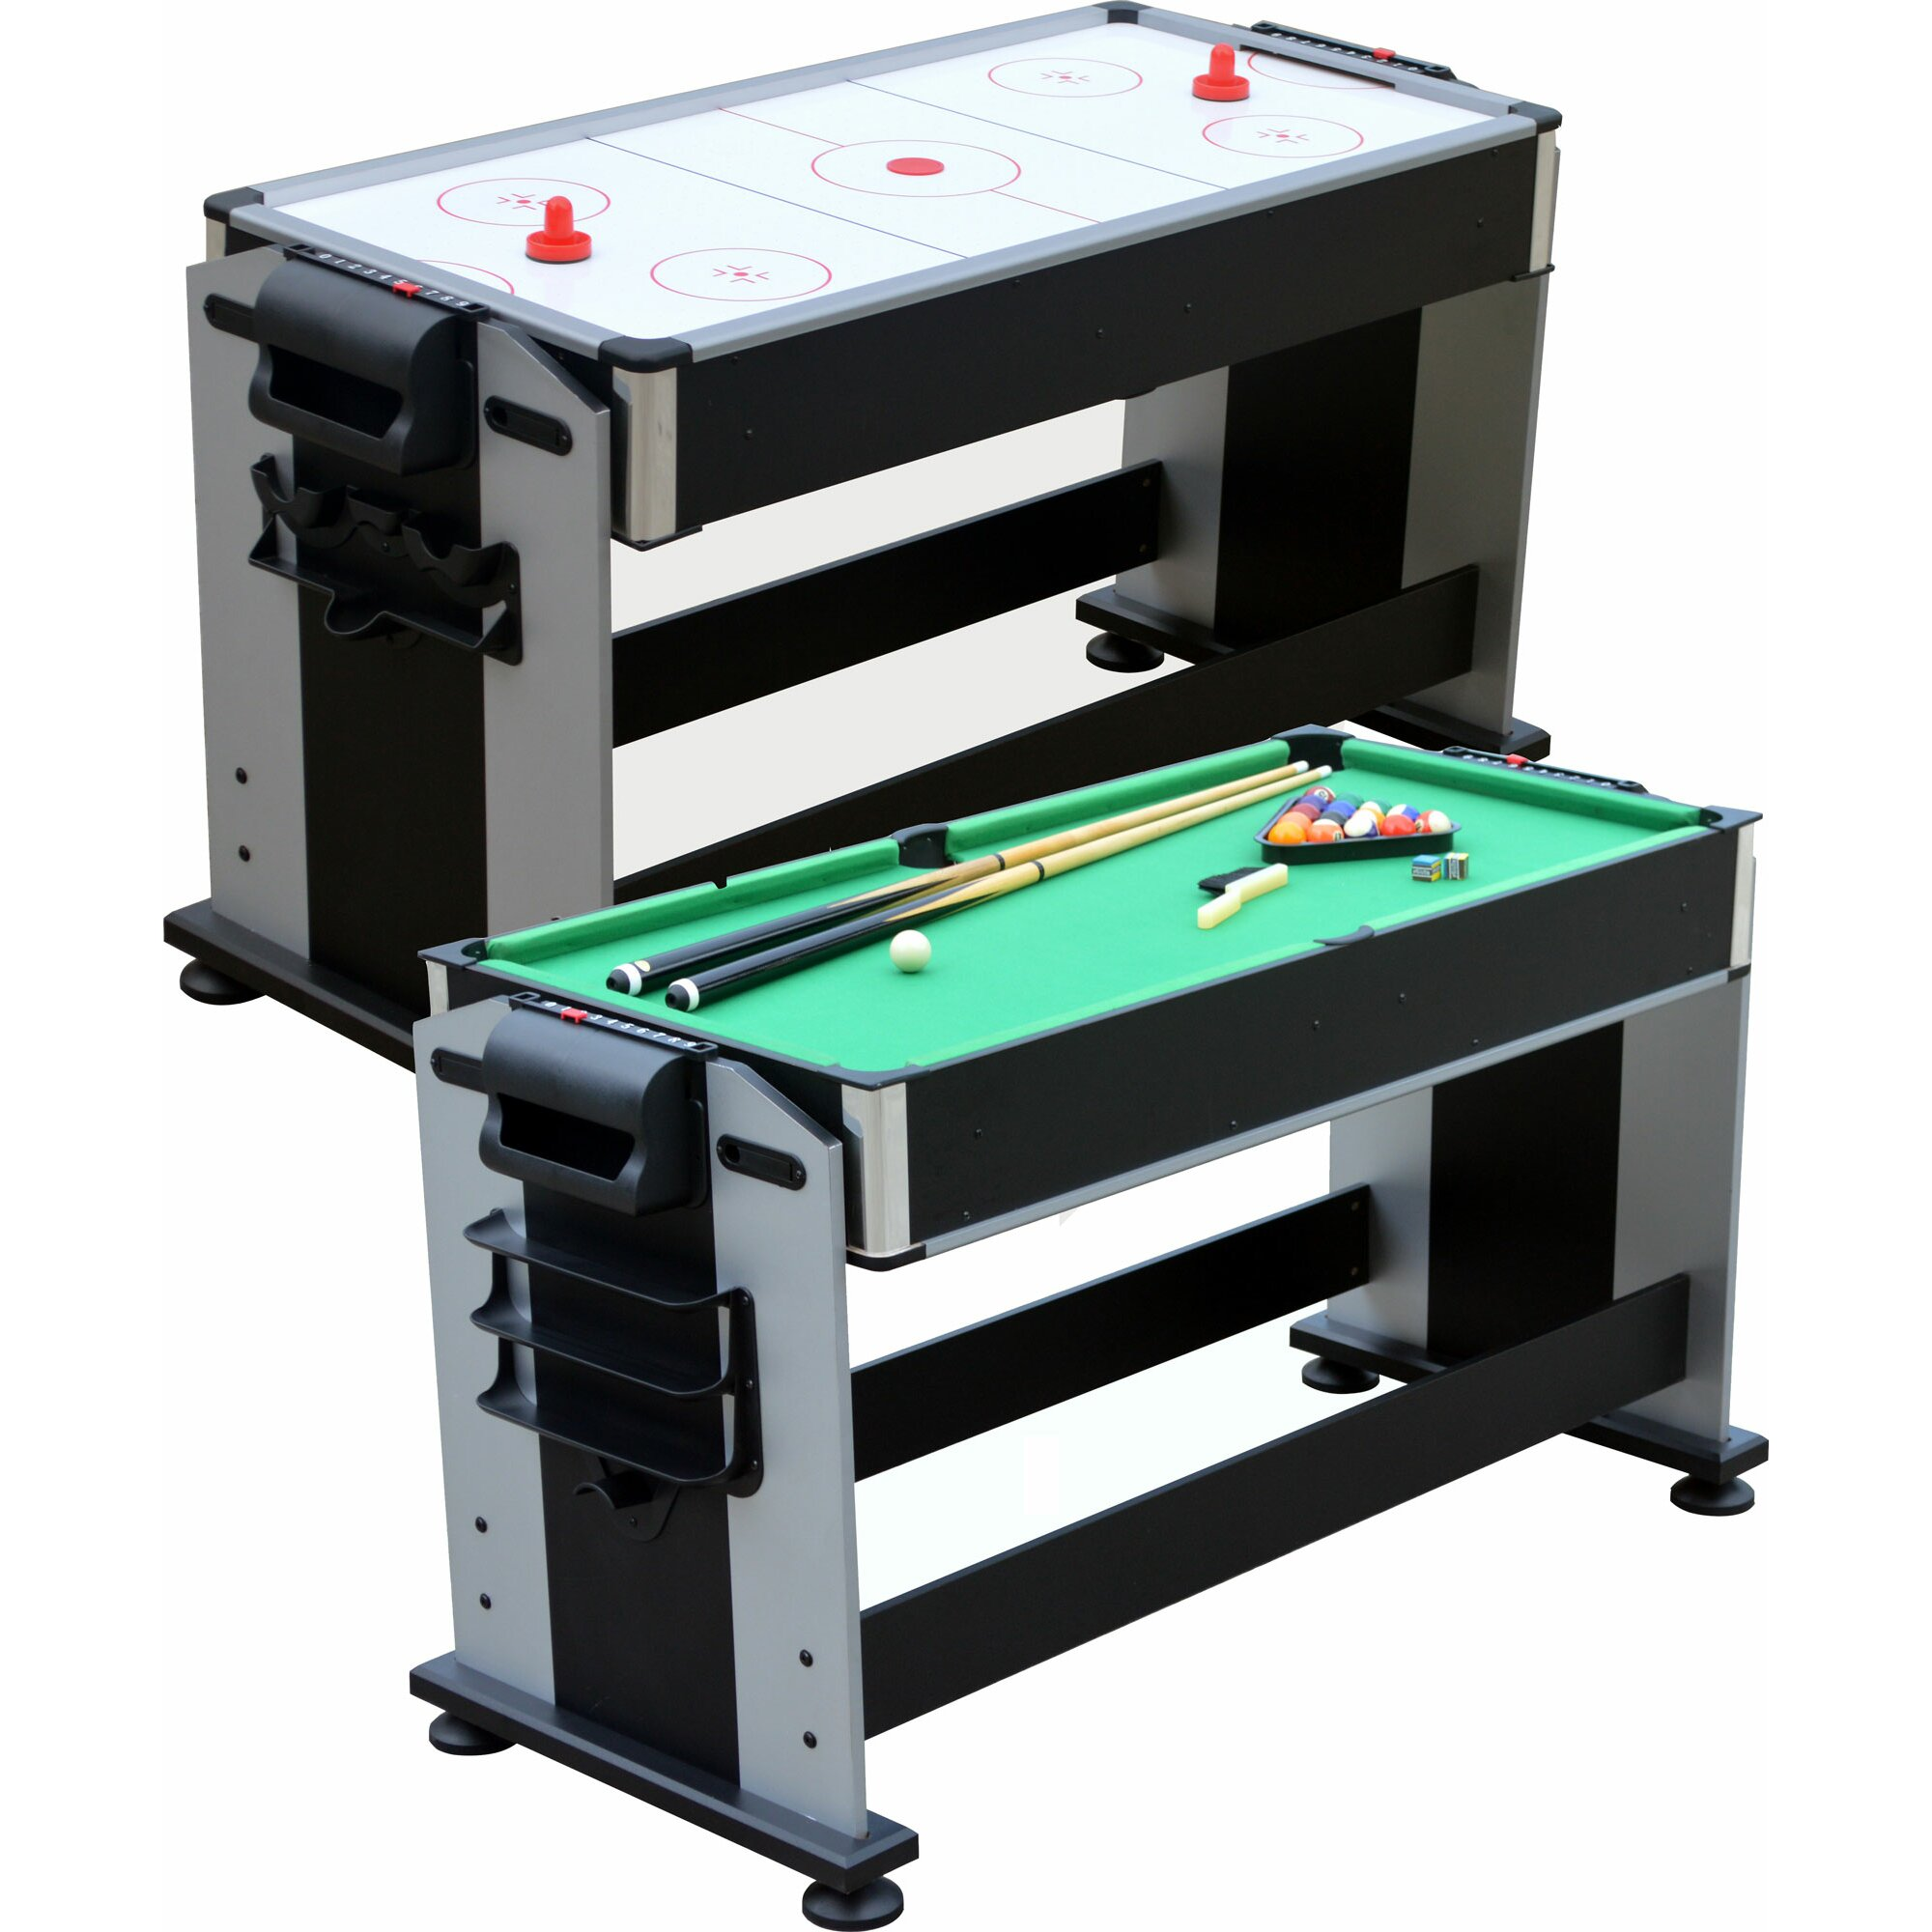 3 in 1 ping pong pool air hockey table - Playcraft 2 In 1 Sport Junior Air Hockey And Pool Table